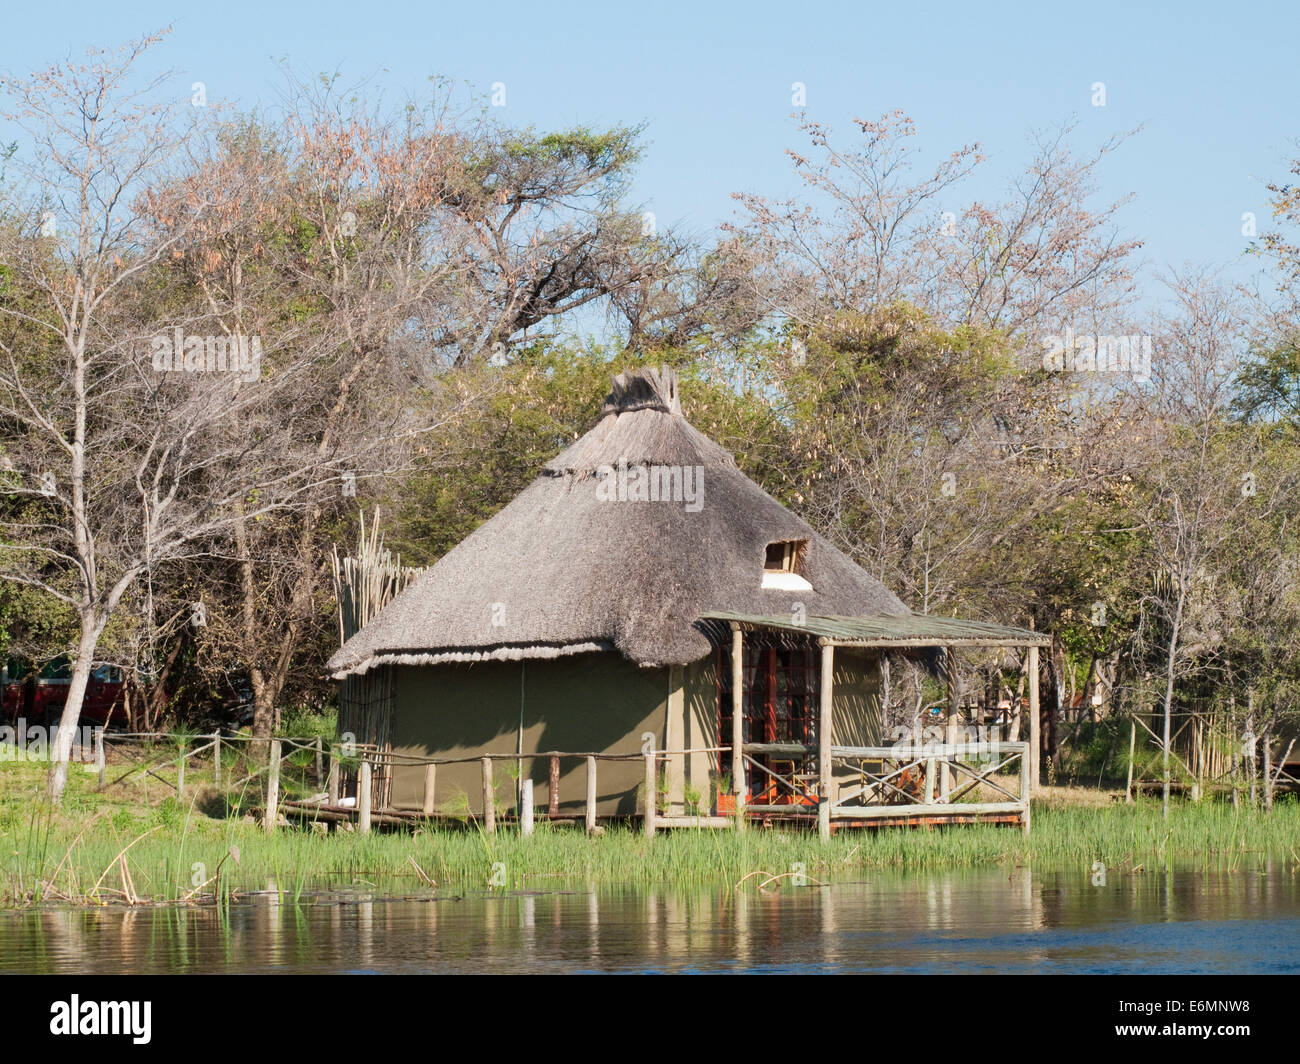 The so-called Island Tents accomodation at the Camp Kwando, built on poles right at the river bank of the Kwando - Stock Image